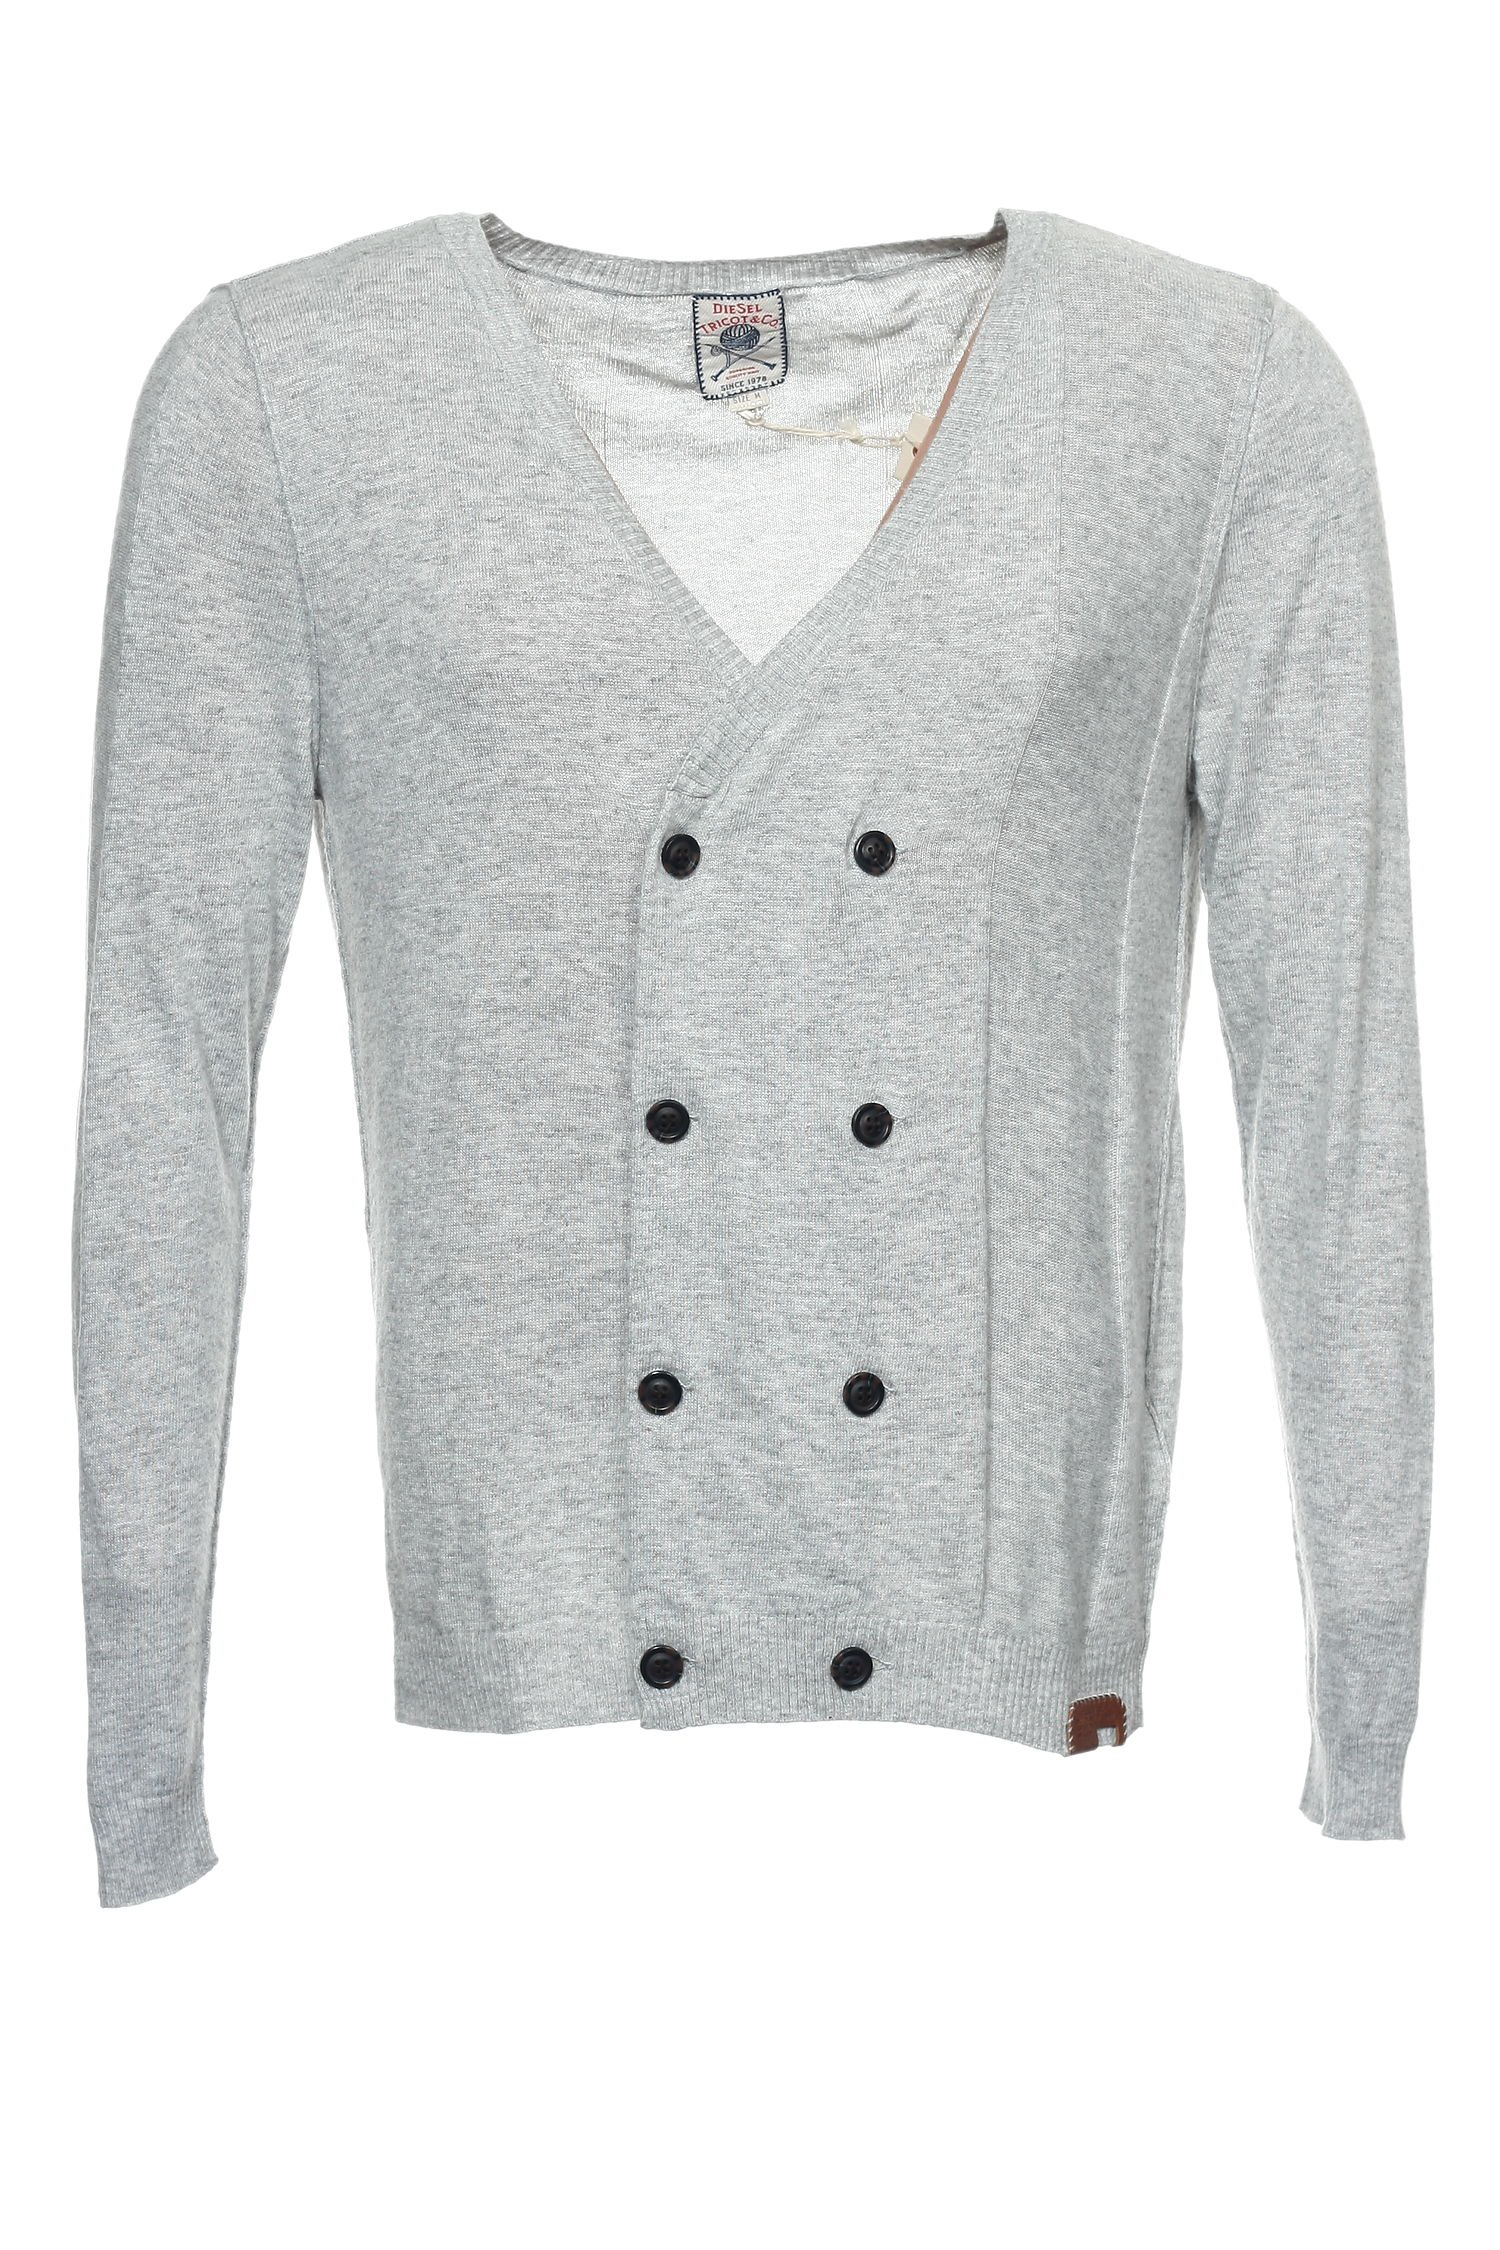 Diesel 'Tricot & Co' Light Gray Heather Cardigan Sweater , Size XLarge